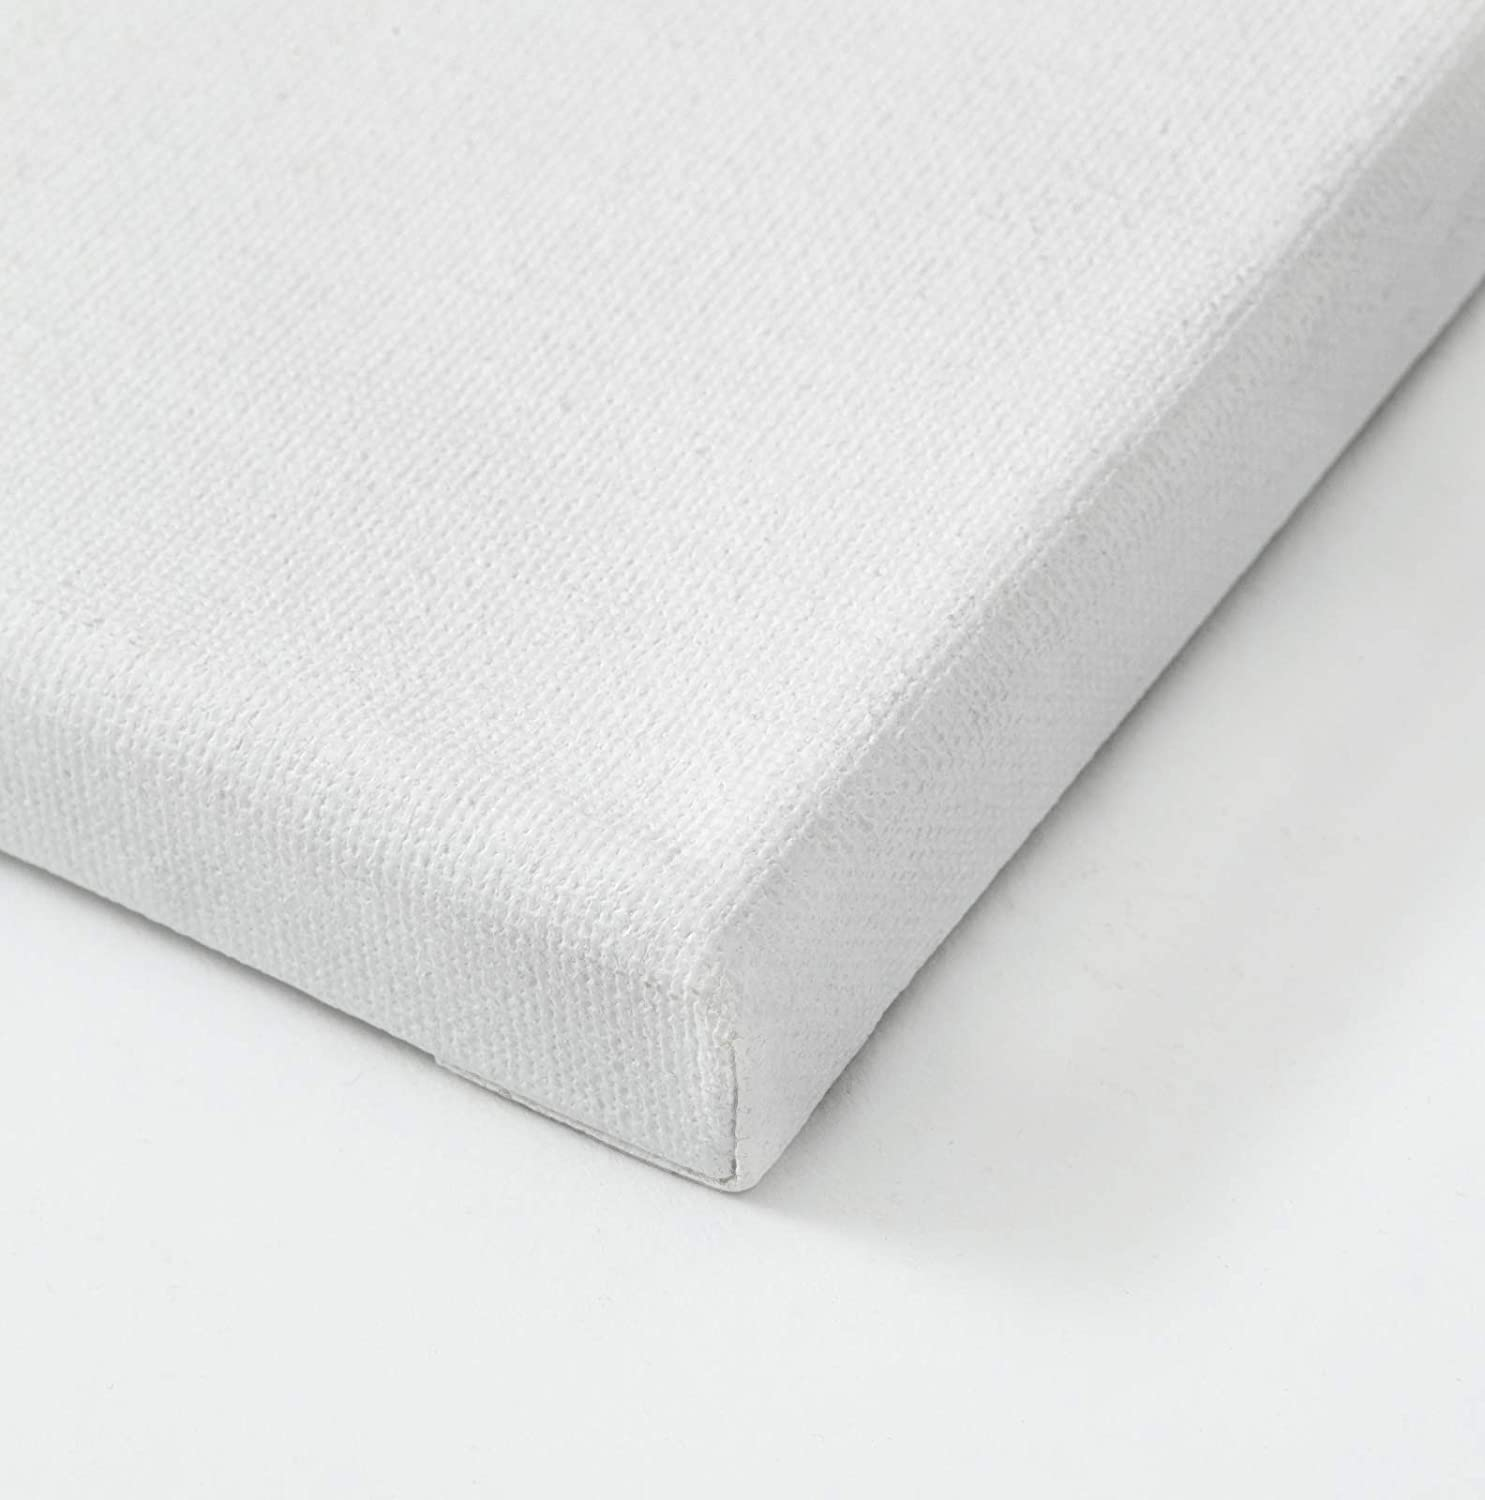 miniature 46 - Americanflat Stretched Canvas in White 100% Cotton Wooden Frames & Acid Free